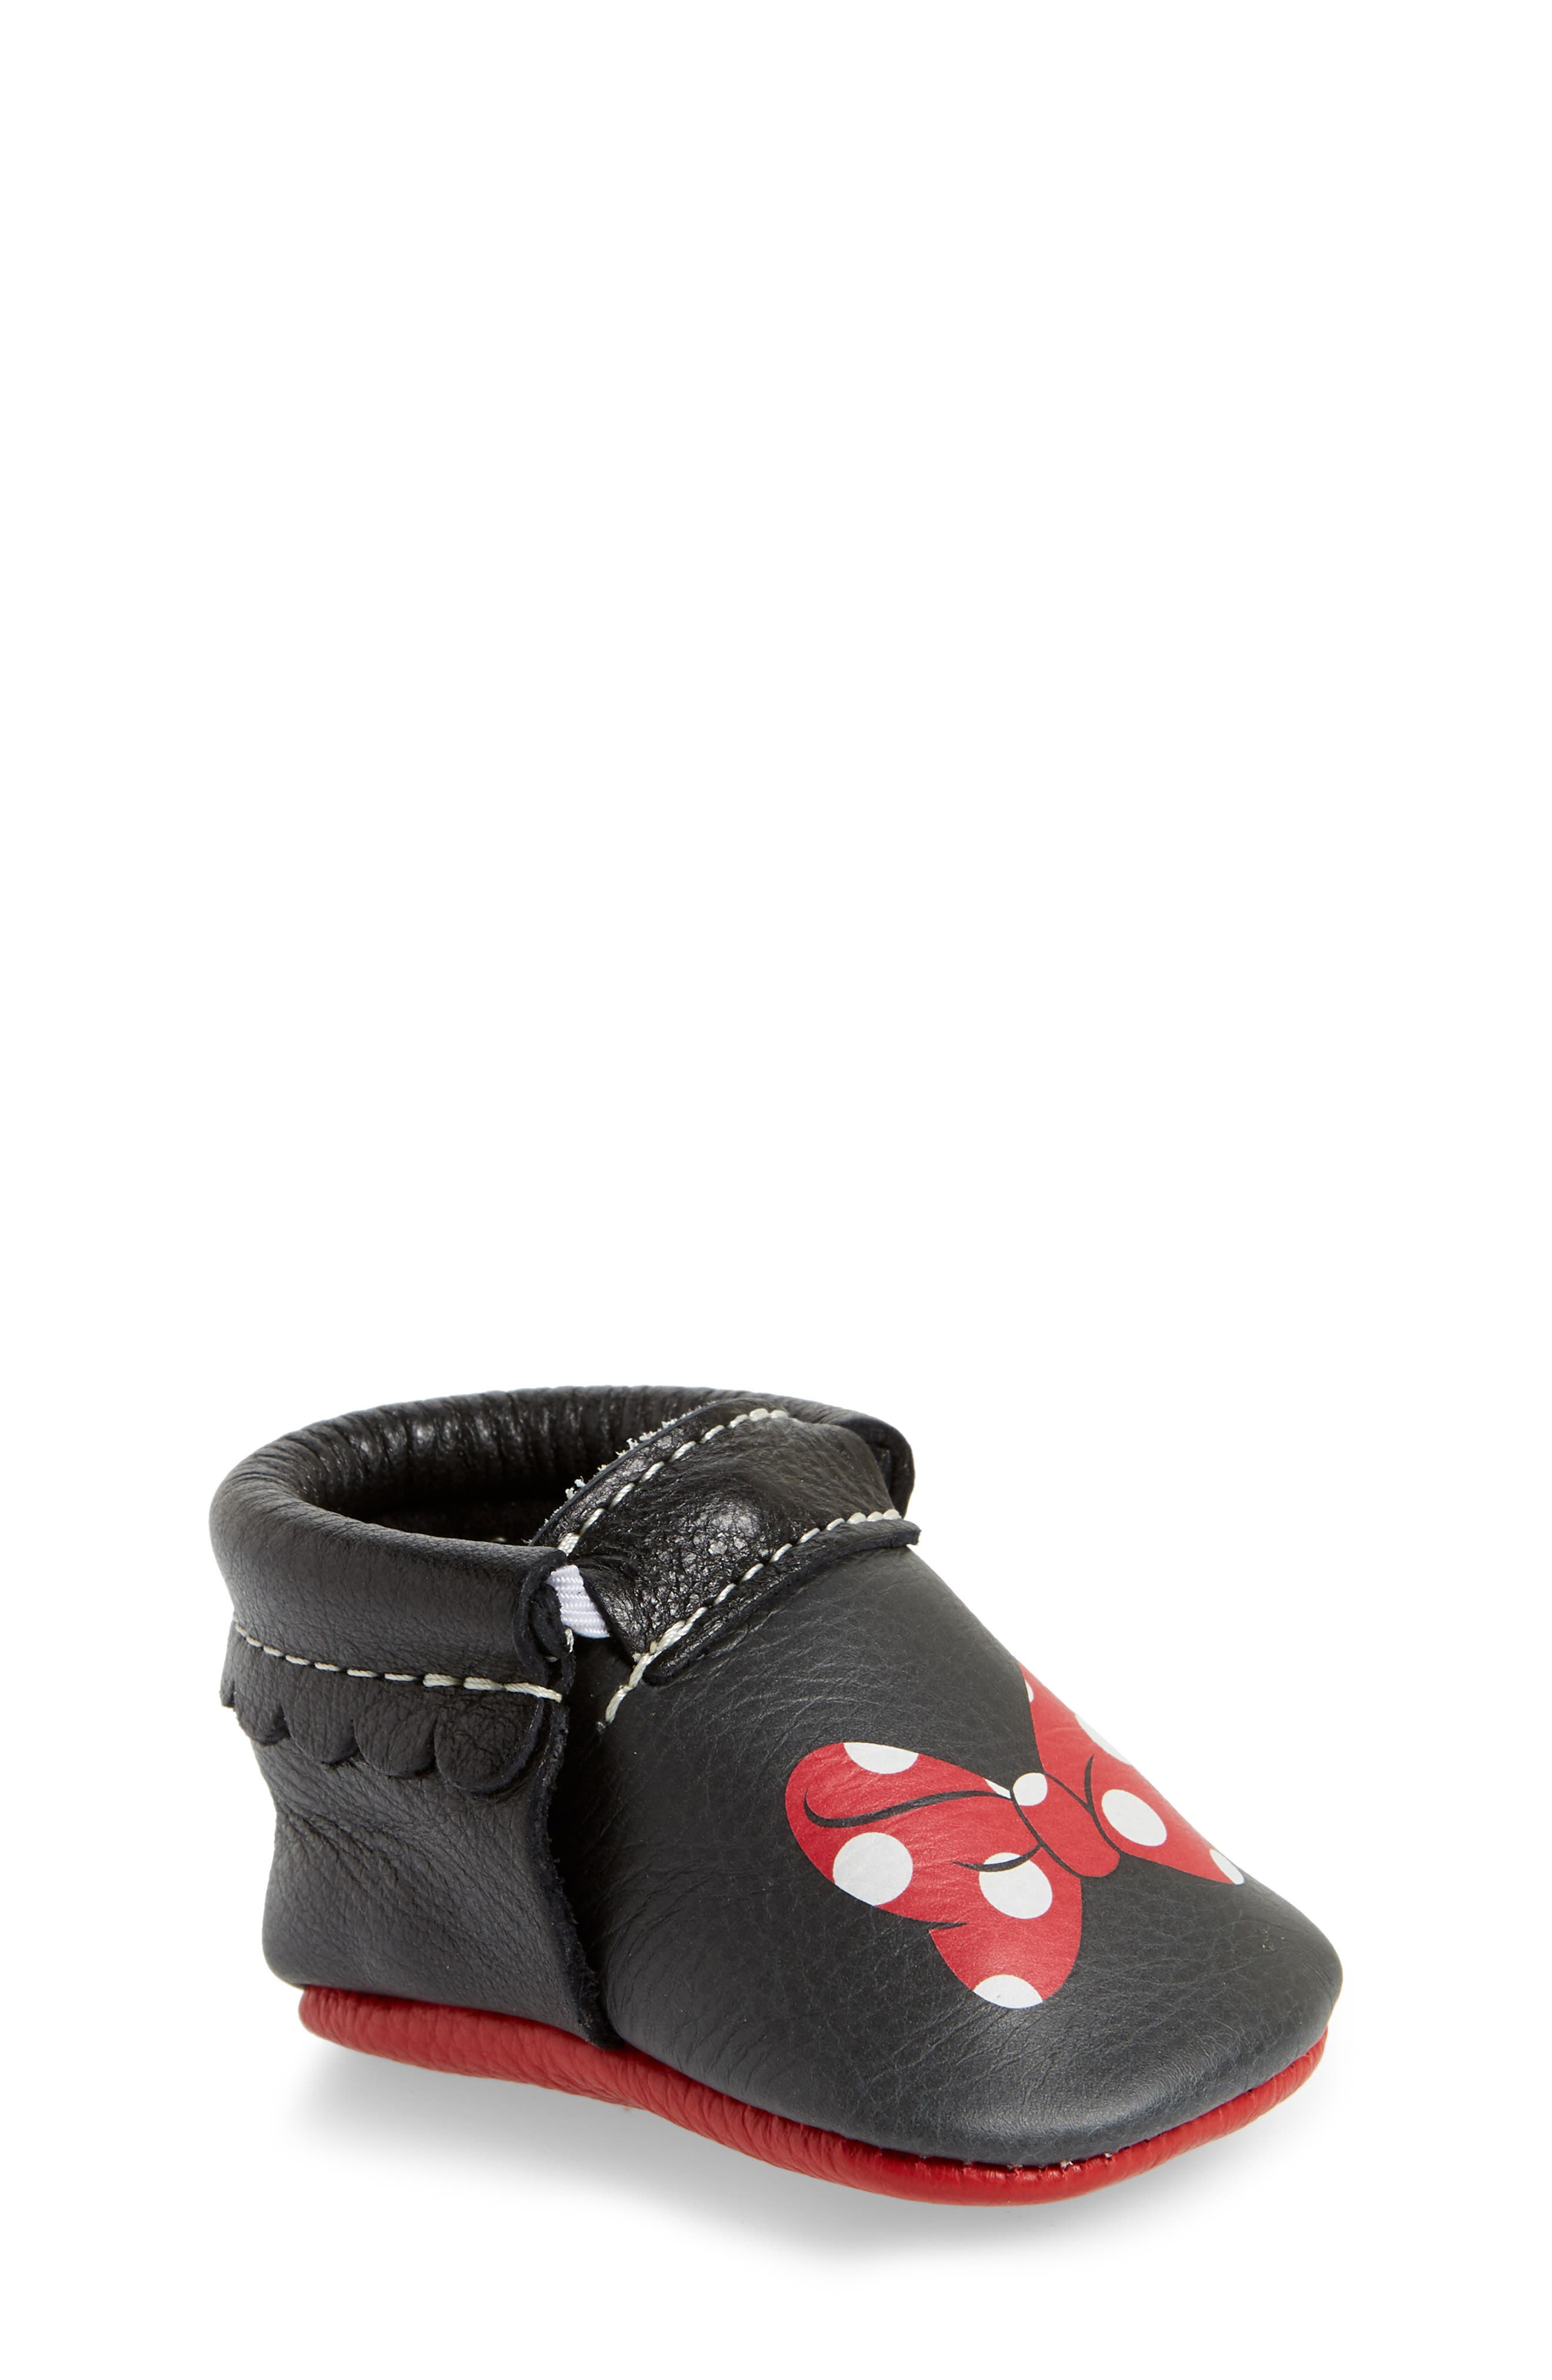 x Disney<sup>®</sup> Baby Minnie Mouse Crib Moccasin,                             Main thumbnail 1, color,                             001